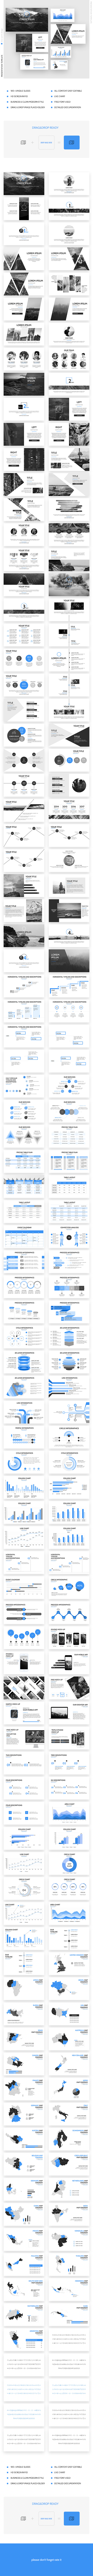 GraphicRiver Blue Steel Business Strategy Powerpoint Template 21036183